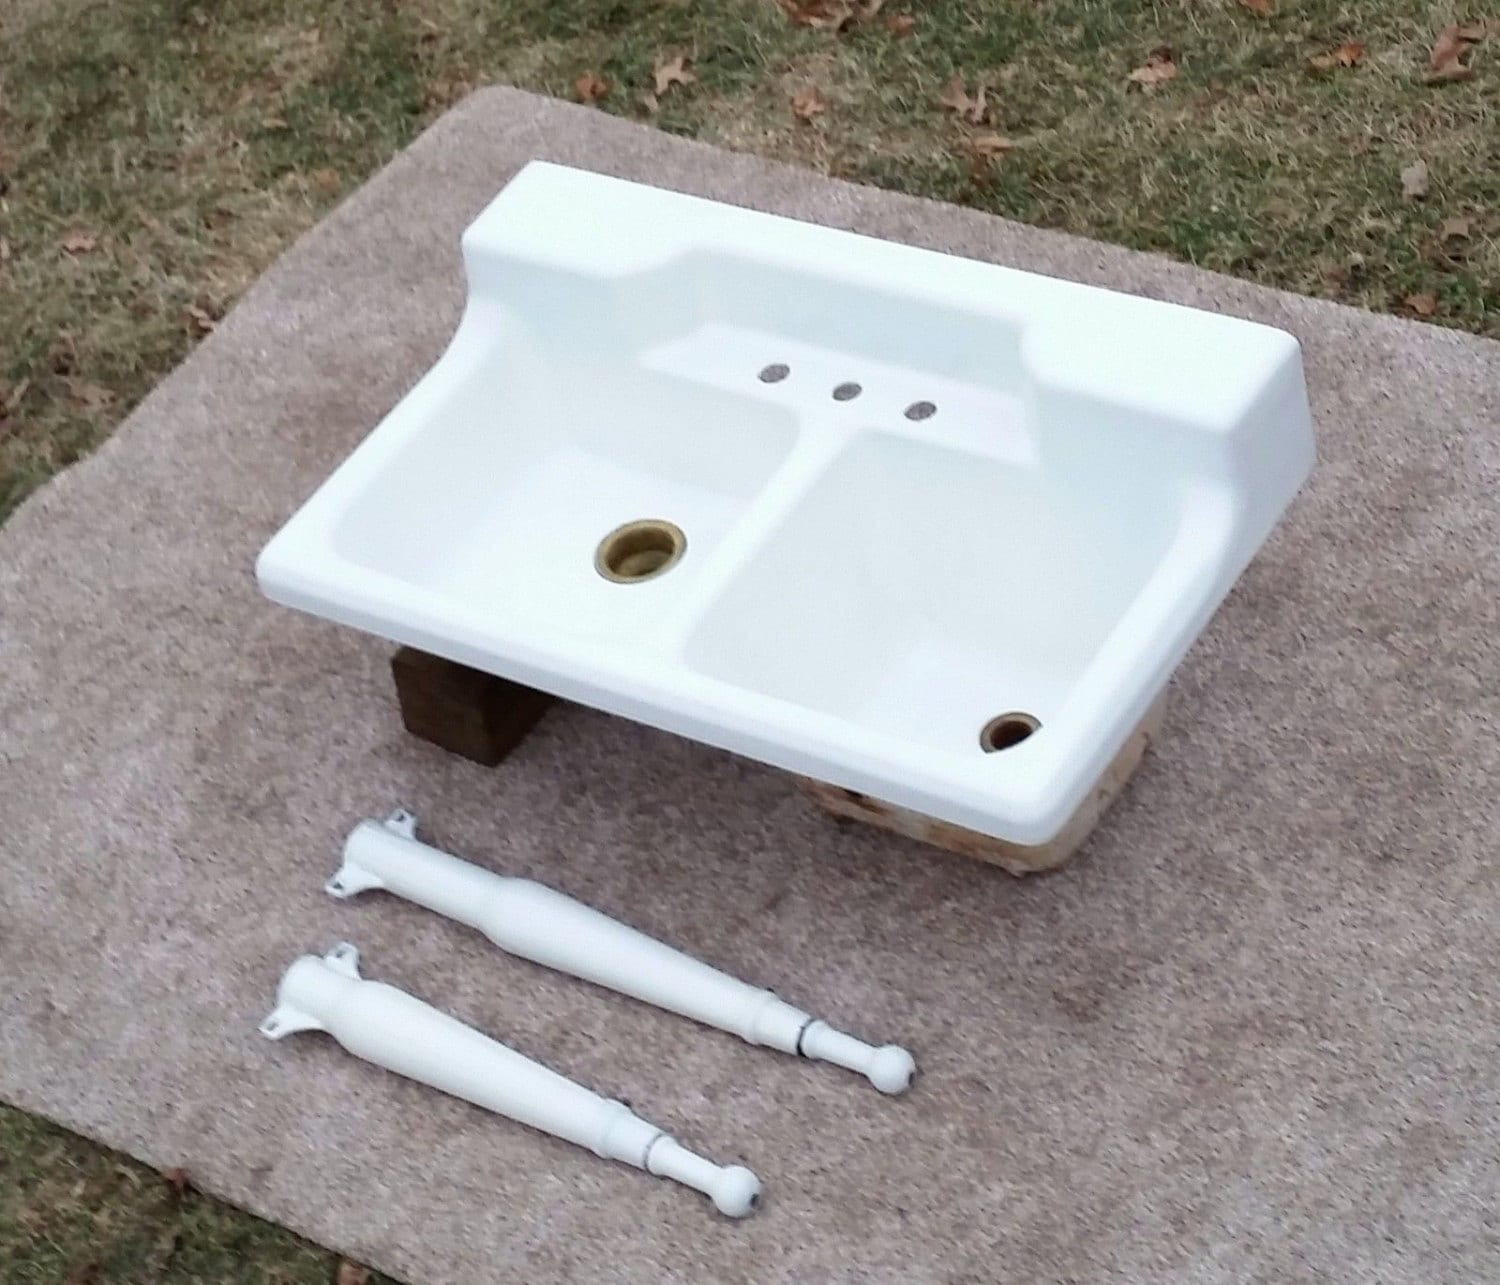 Farmhouse Porcelain Sink : Original Porcelain Cast Iron Farm Sink-DEEP by AntiqueOriginaL